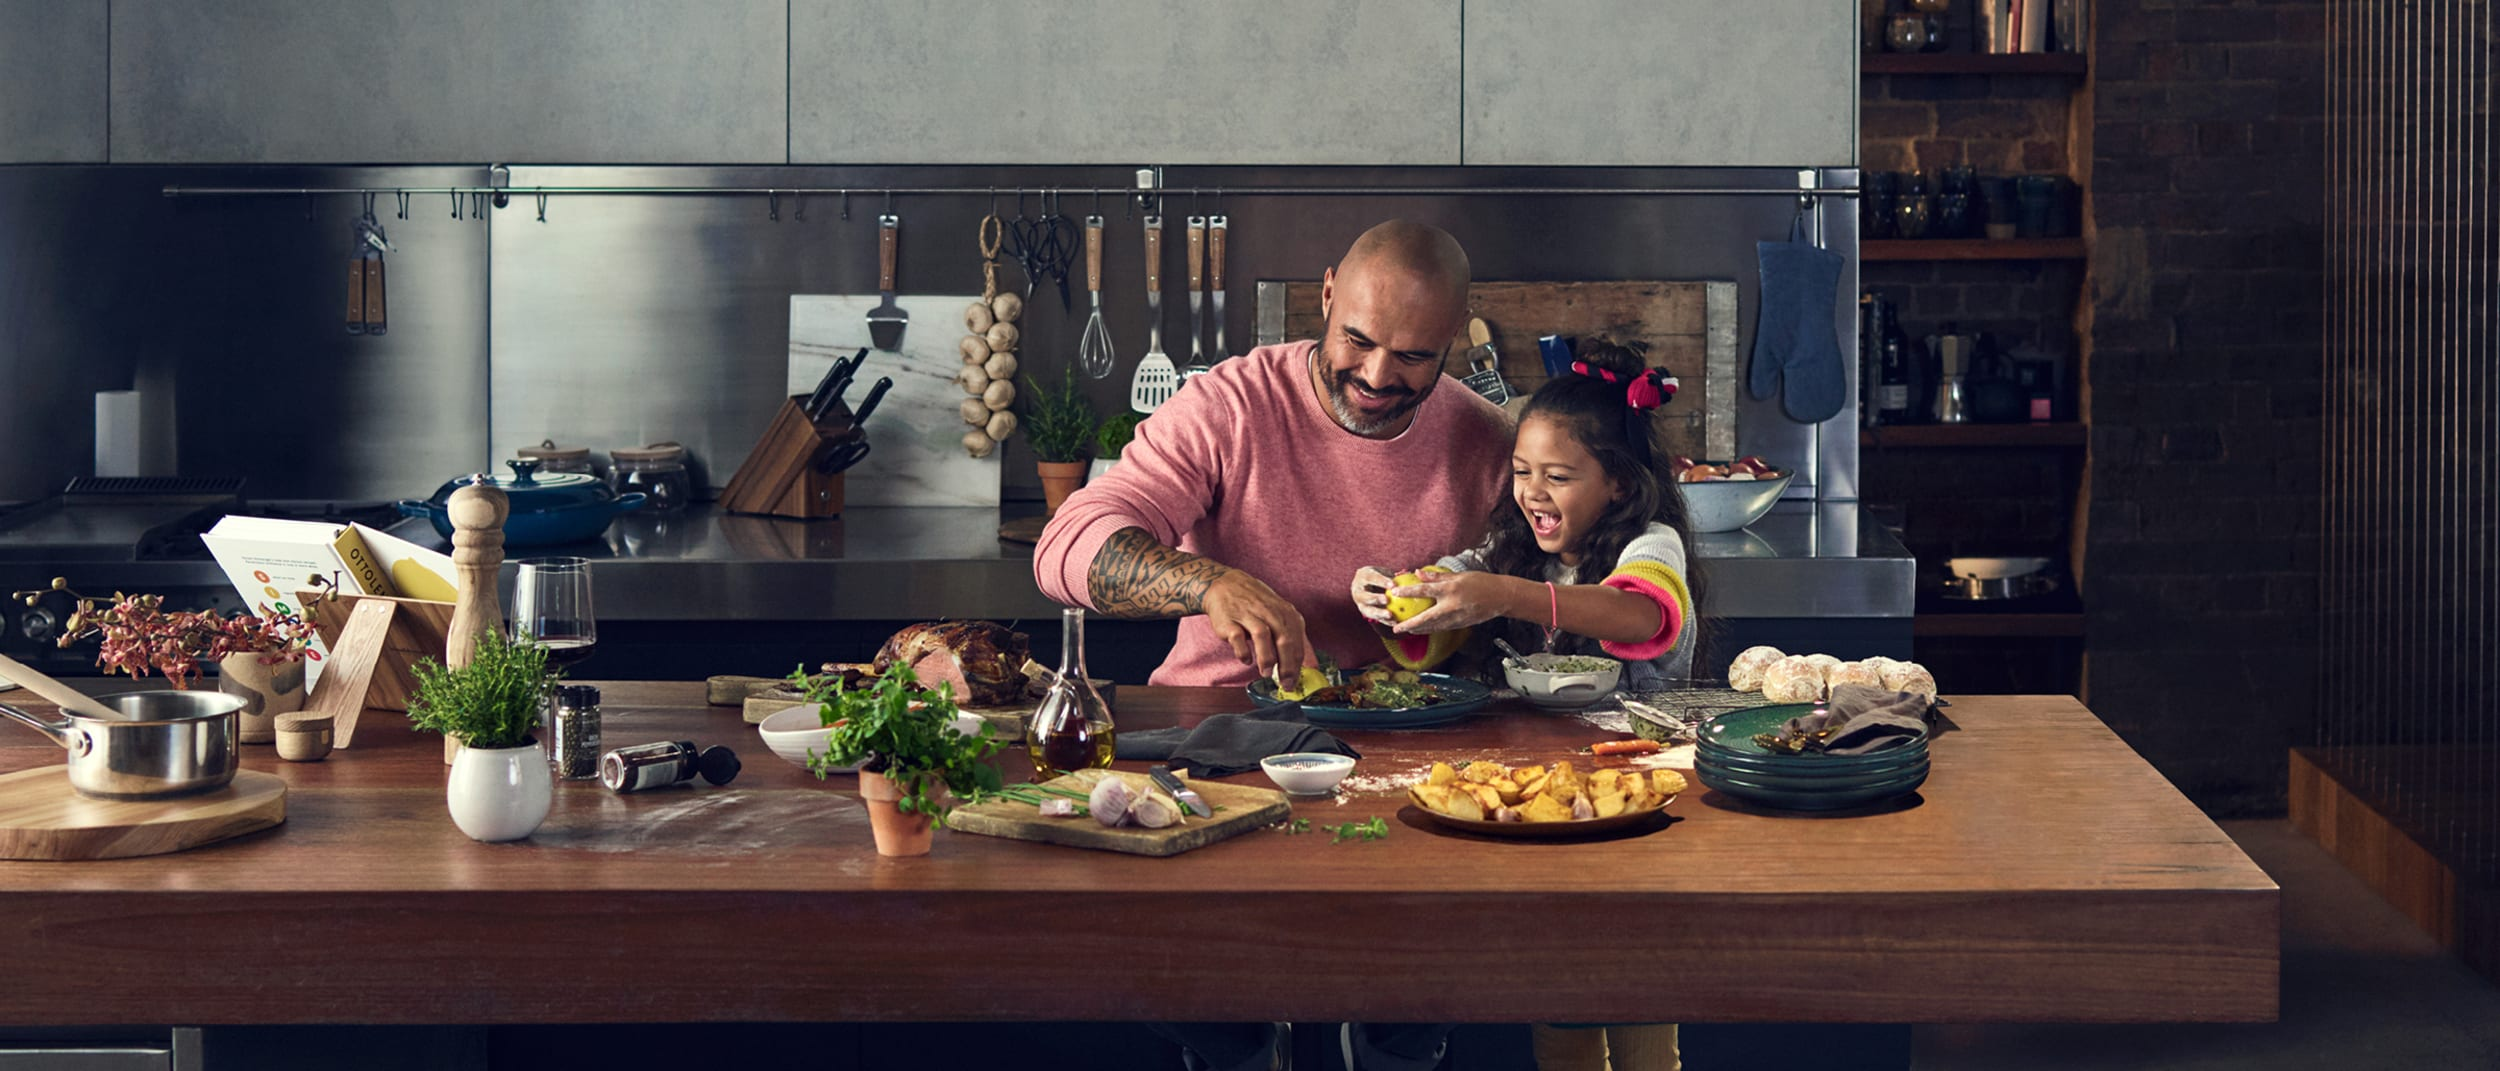 Kids in the kitchen: Sweet treats to feast on